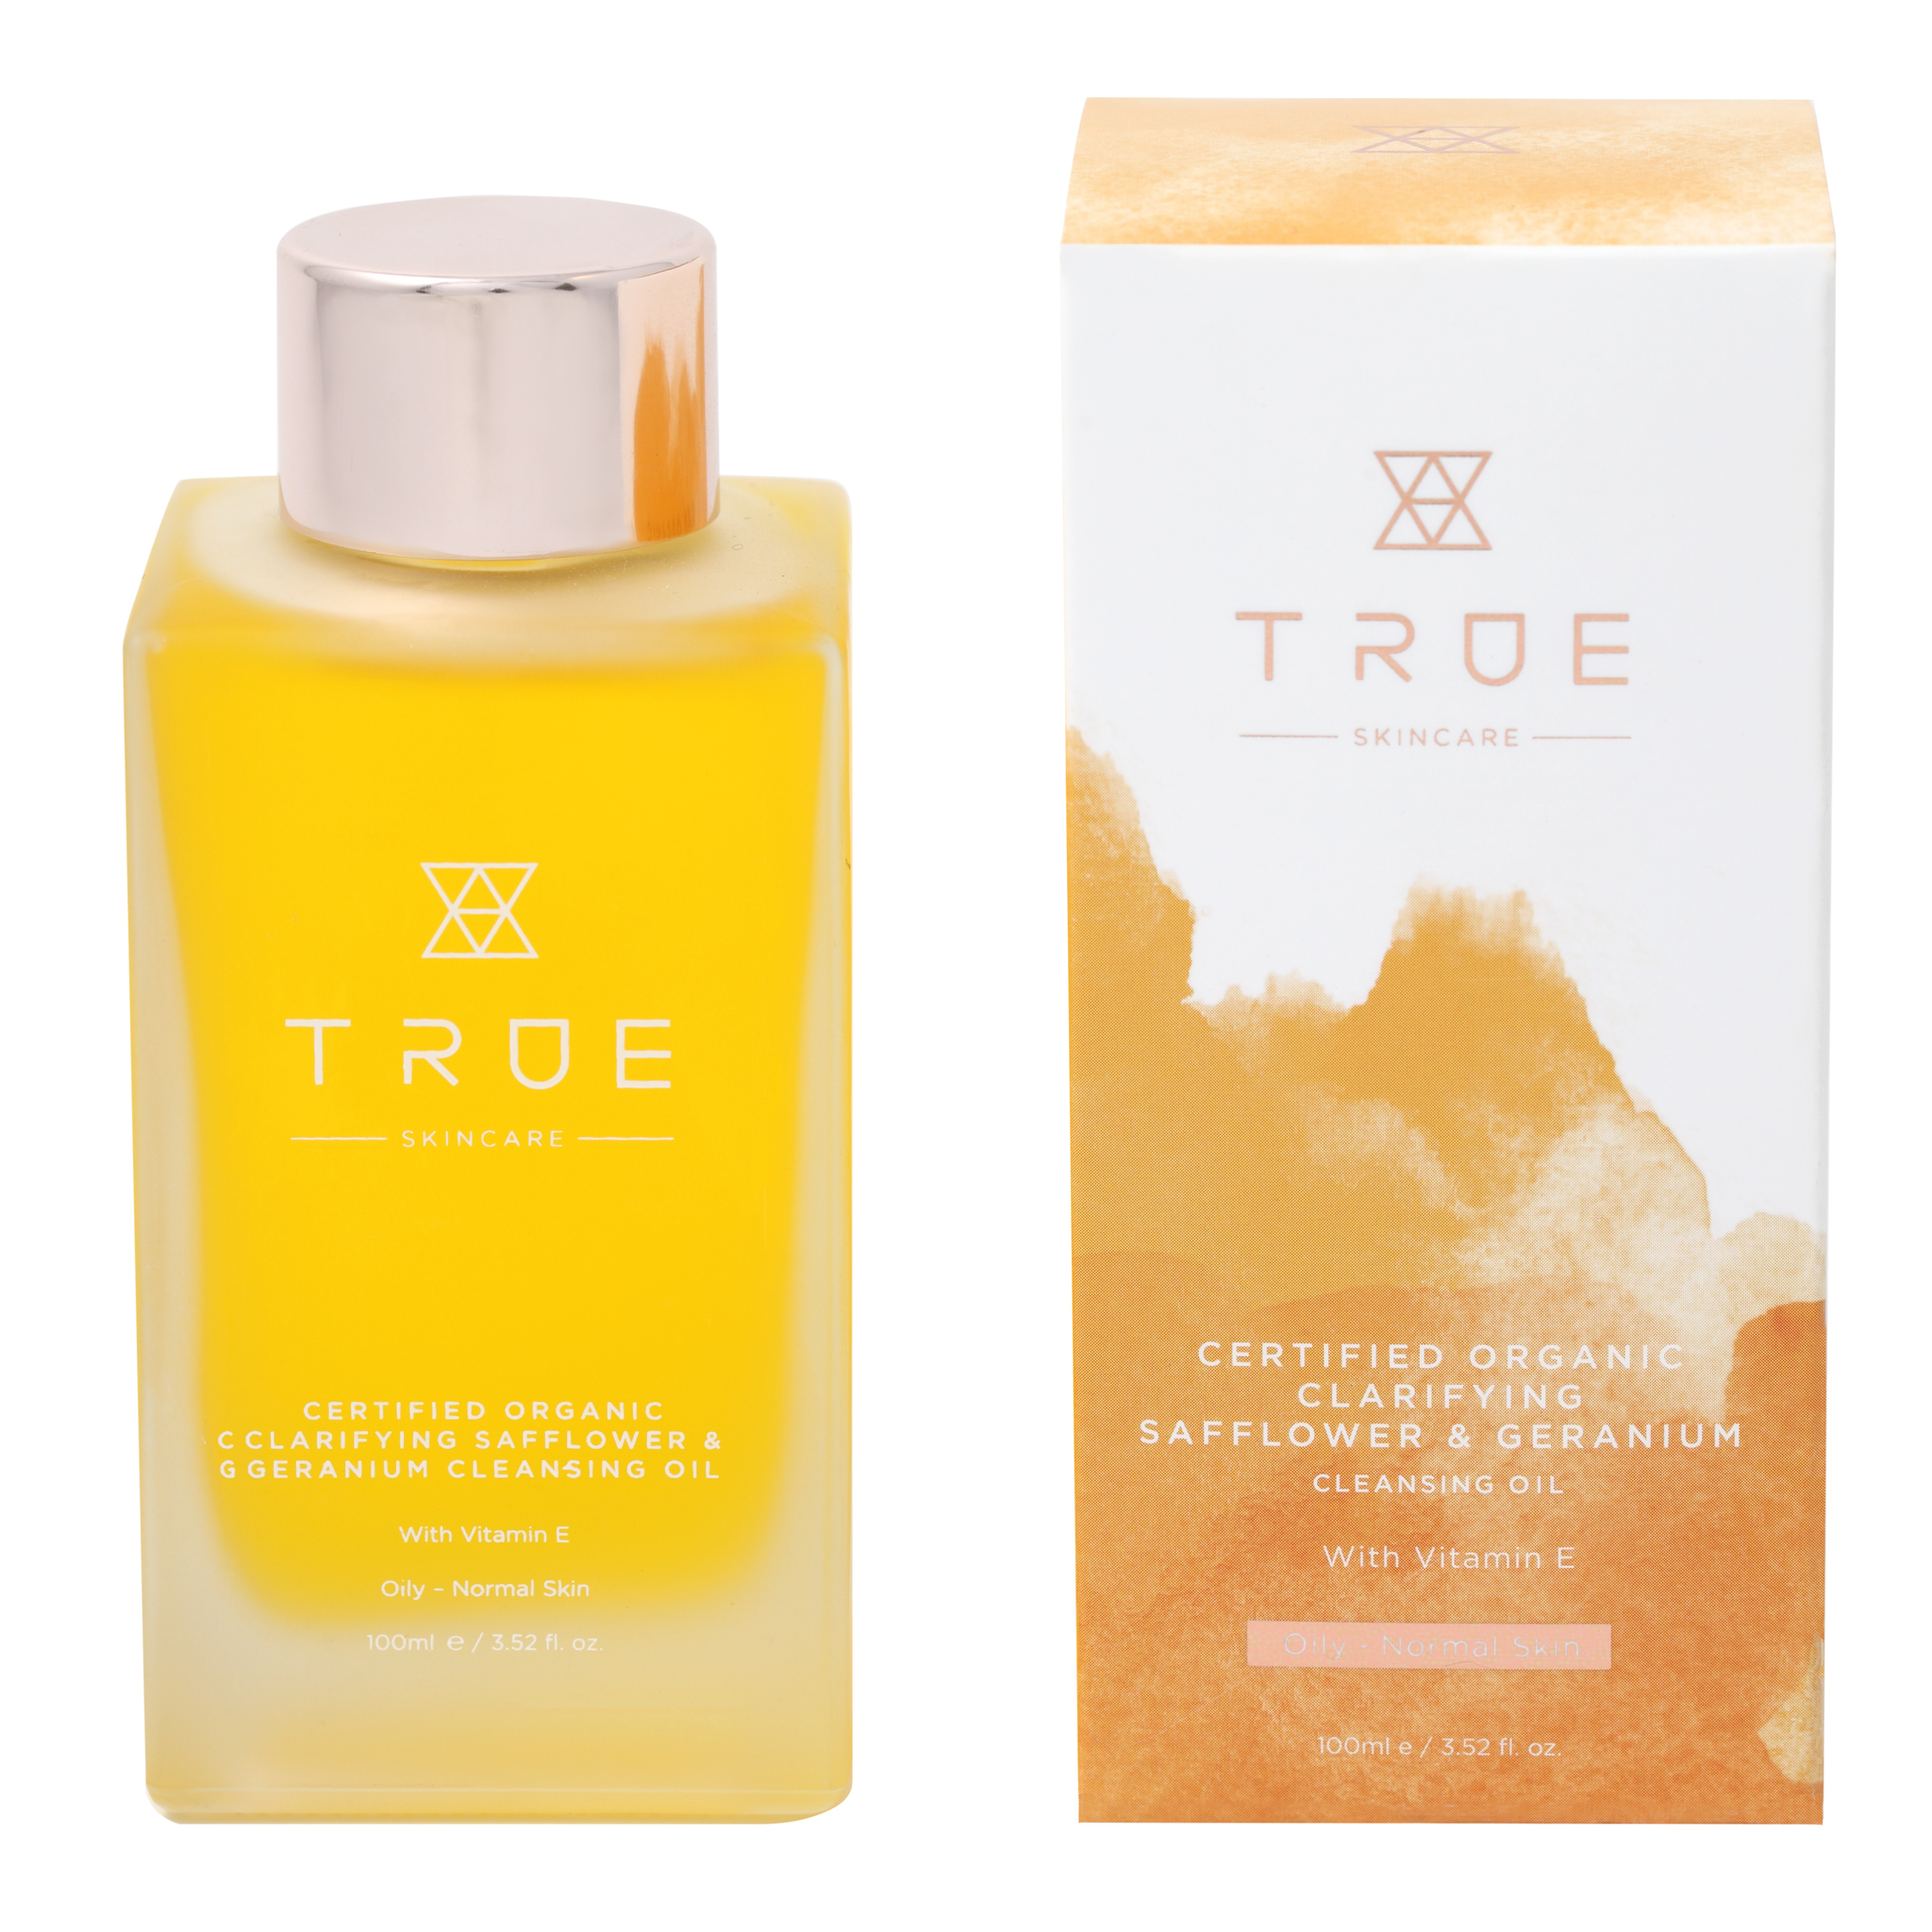 TRUE Skincare Certified Organic Clarifying Safflower & Geranium Cleansing Oil